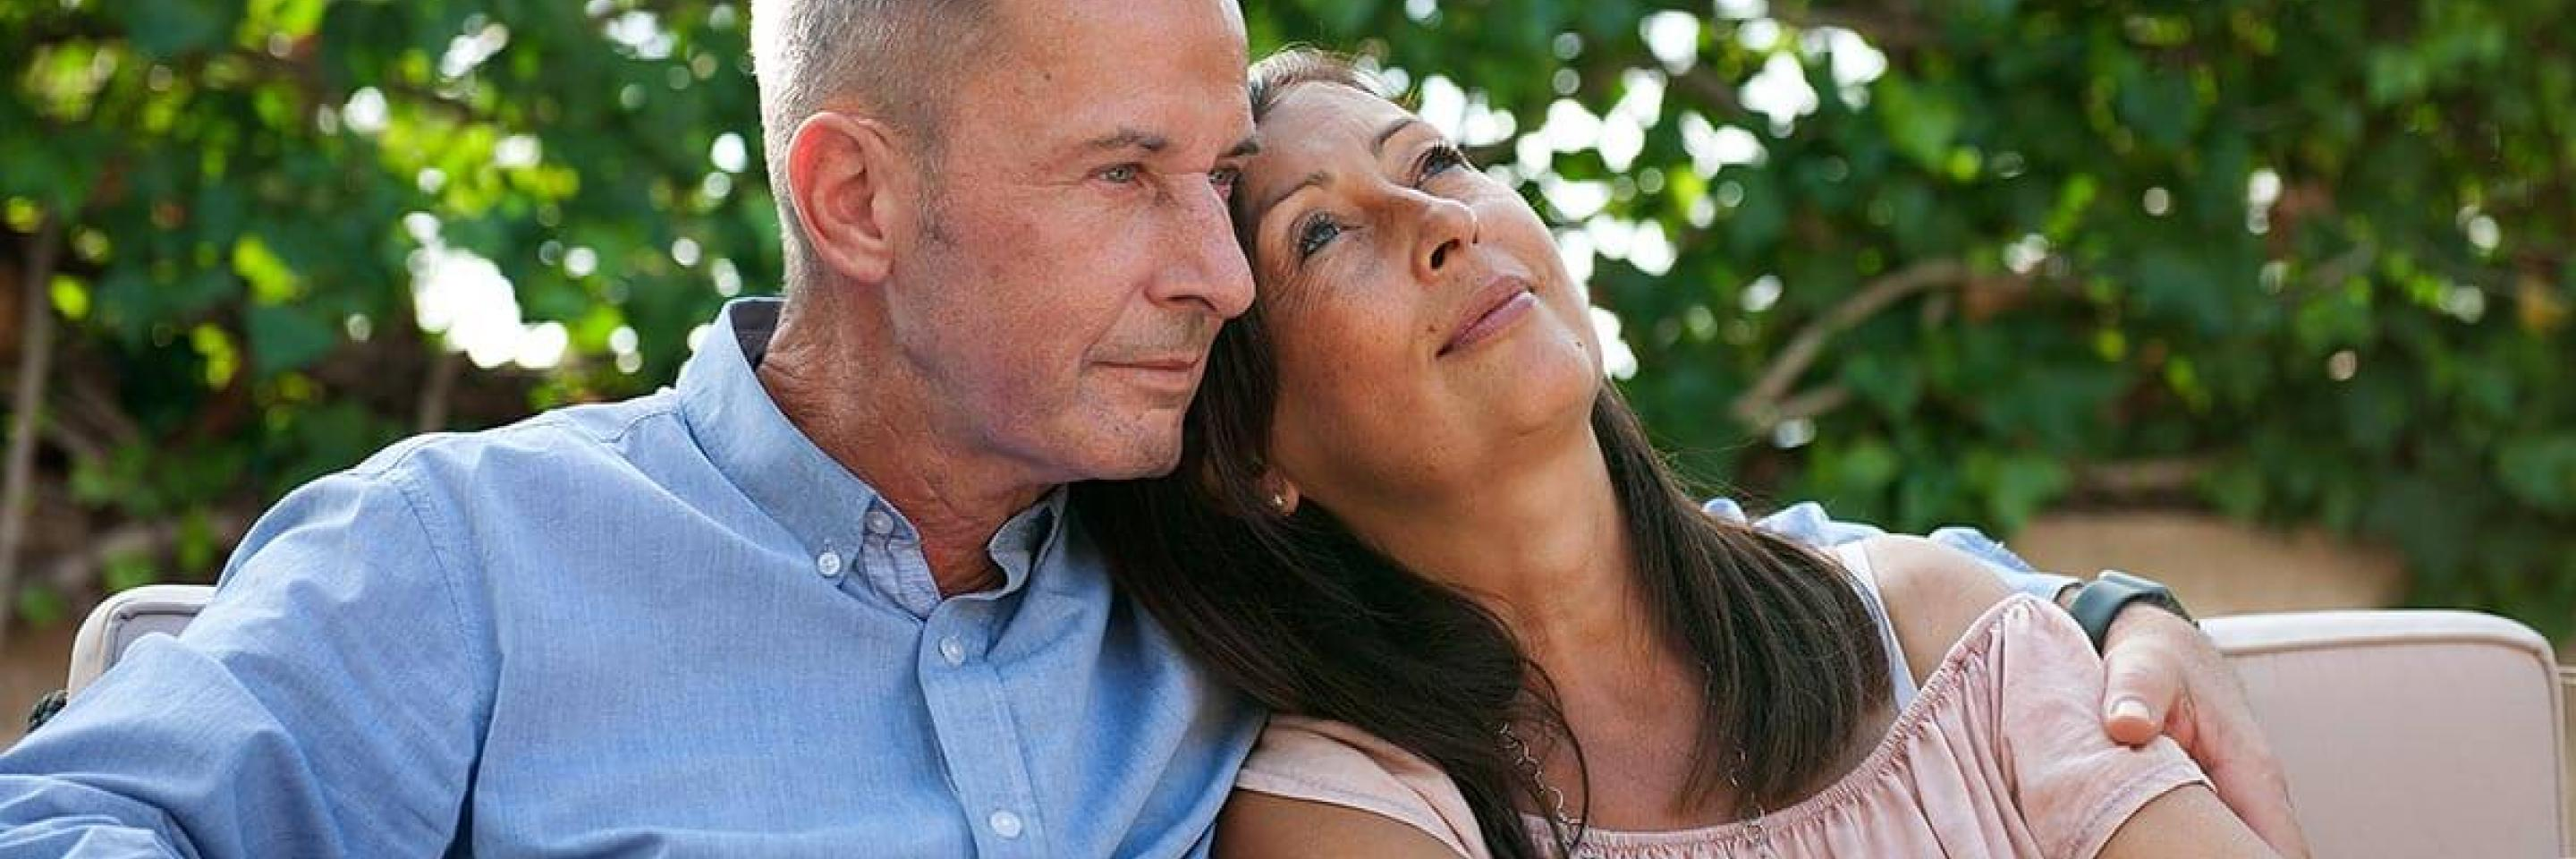 Mature couple looking peaceful